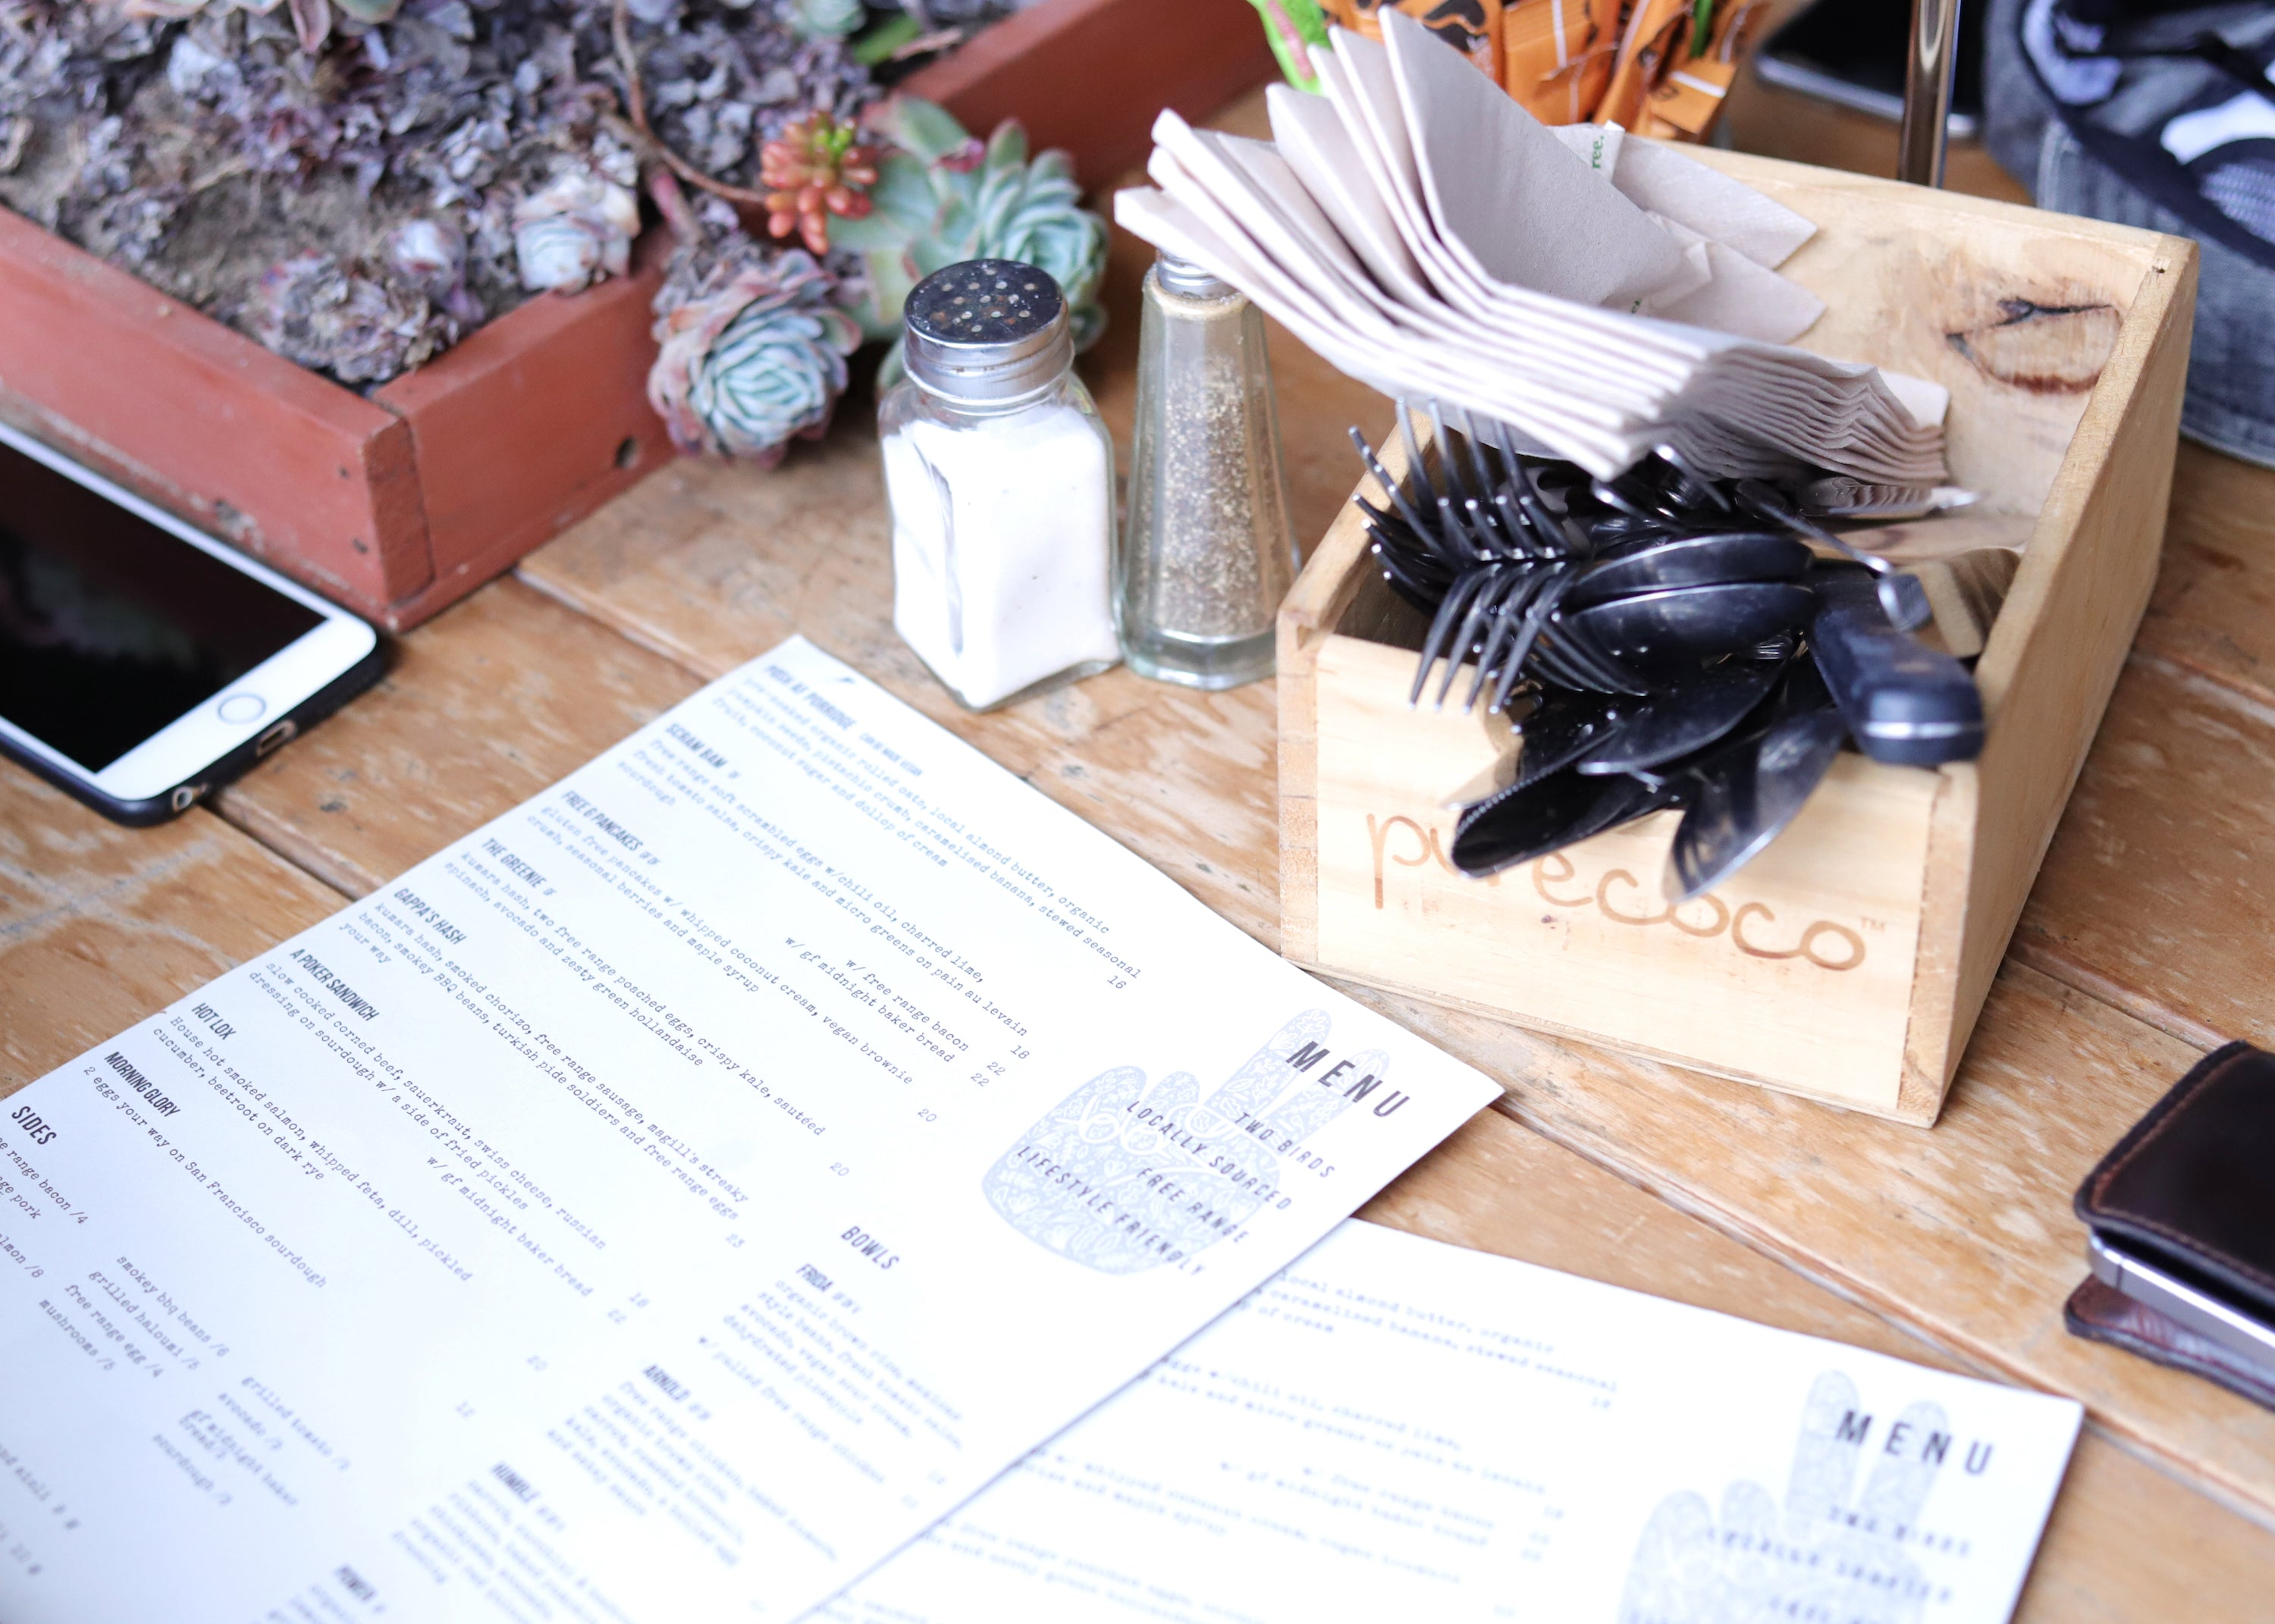 Two Birds Eatery Menu. Locally sourced food, sustainable cafe. Hamilton